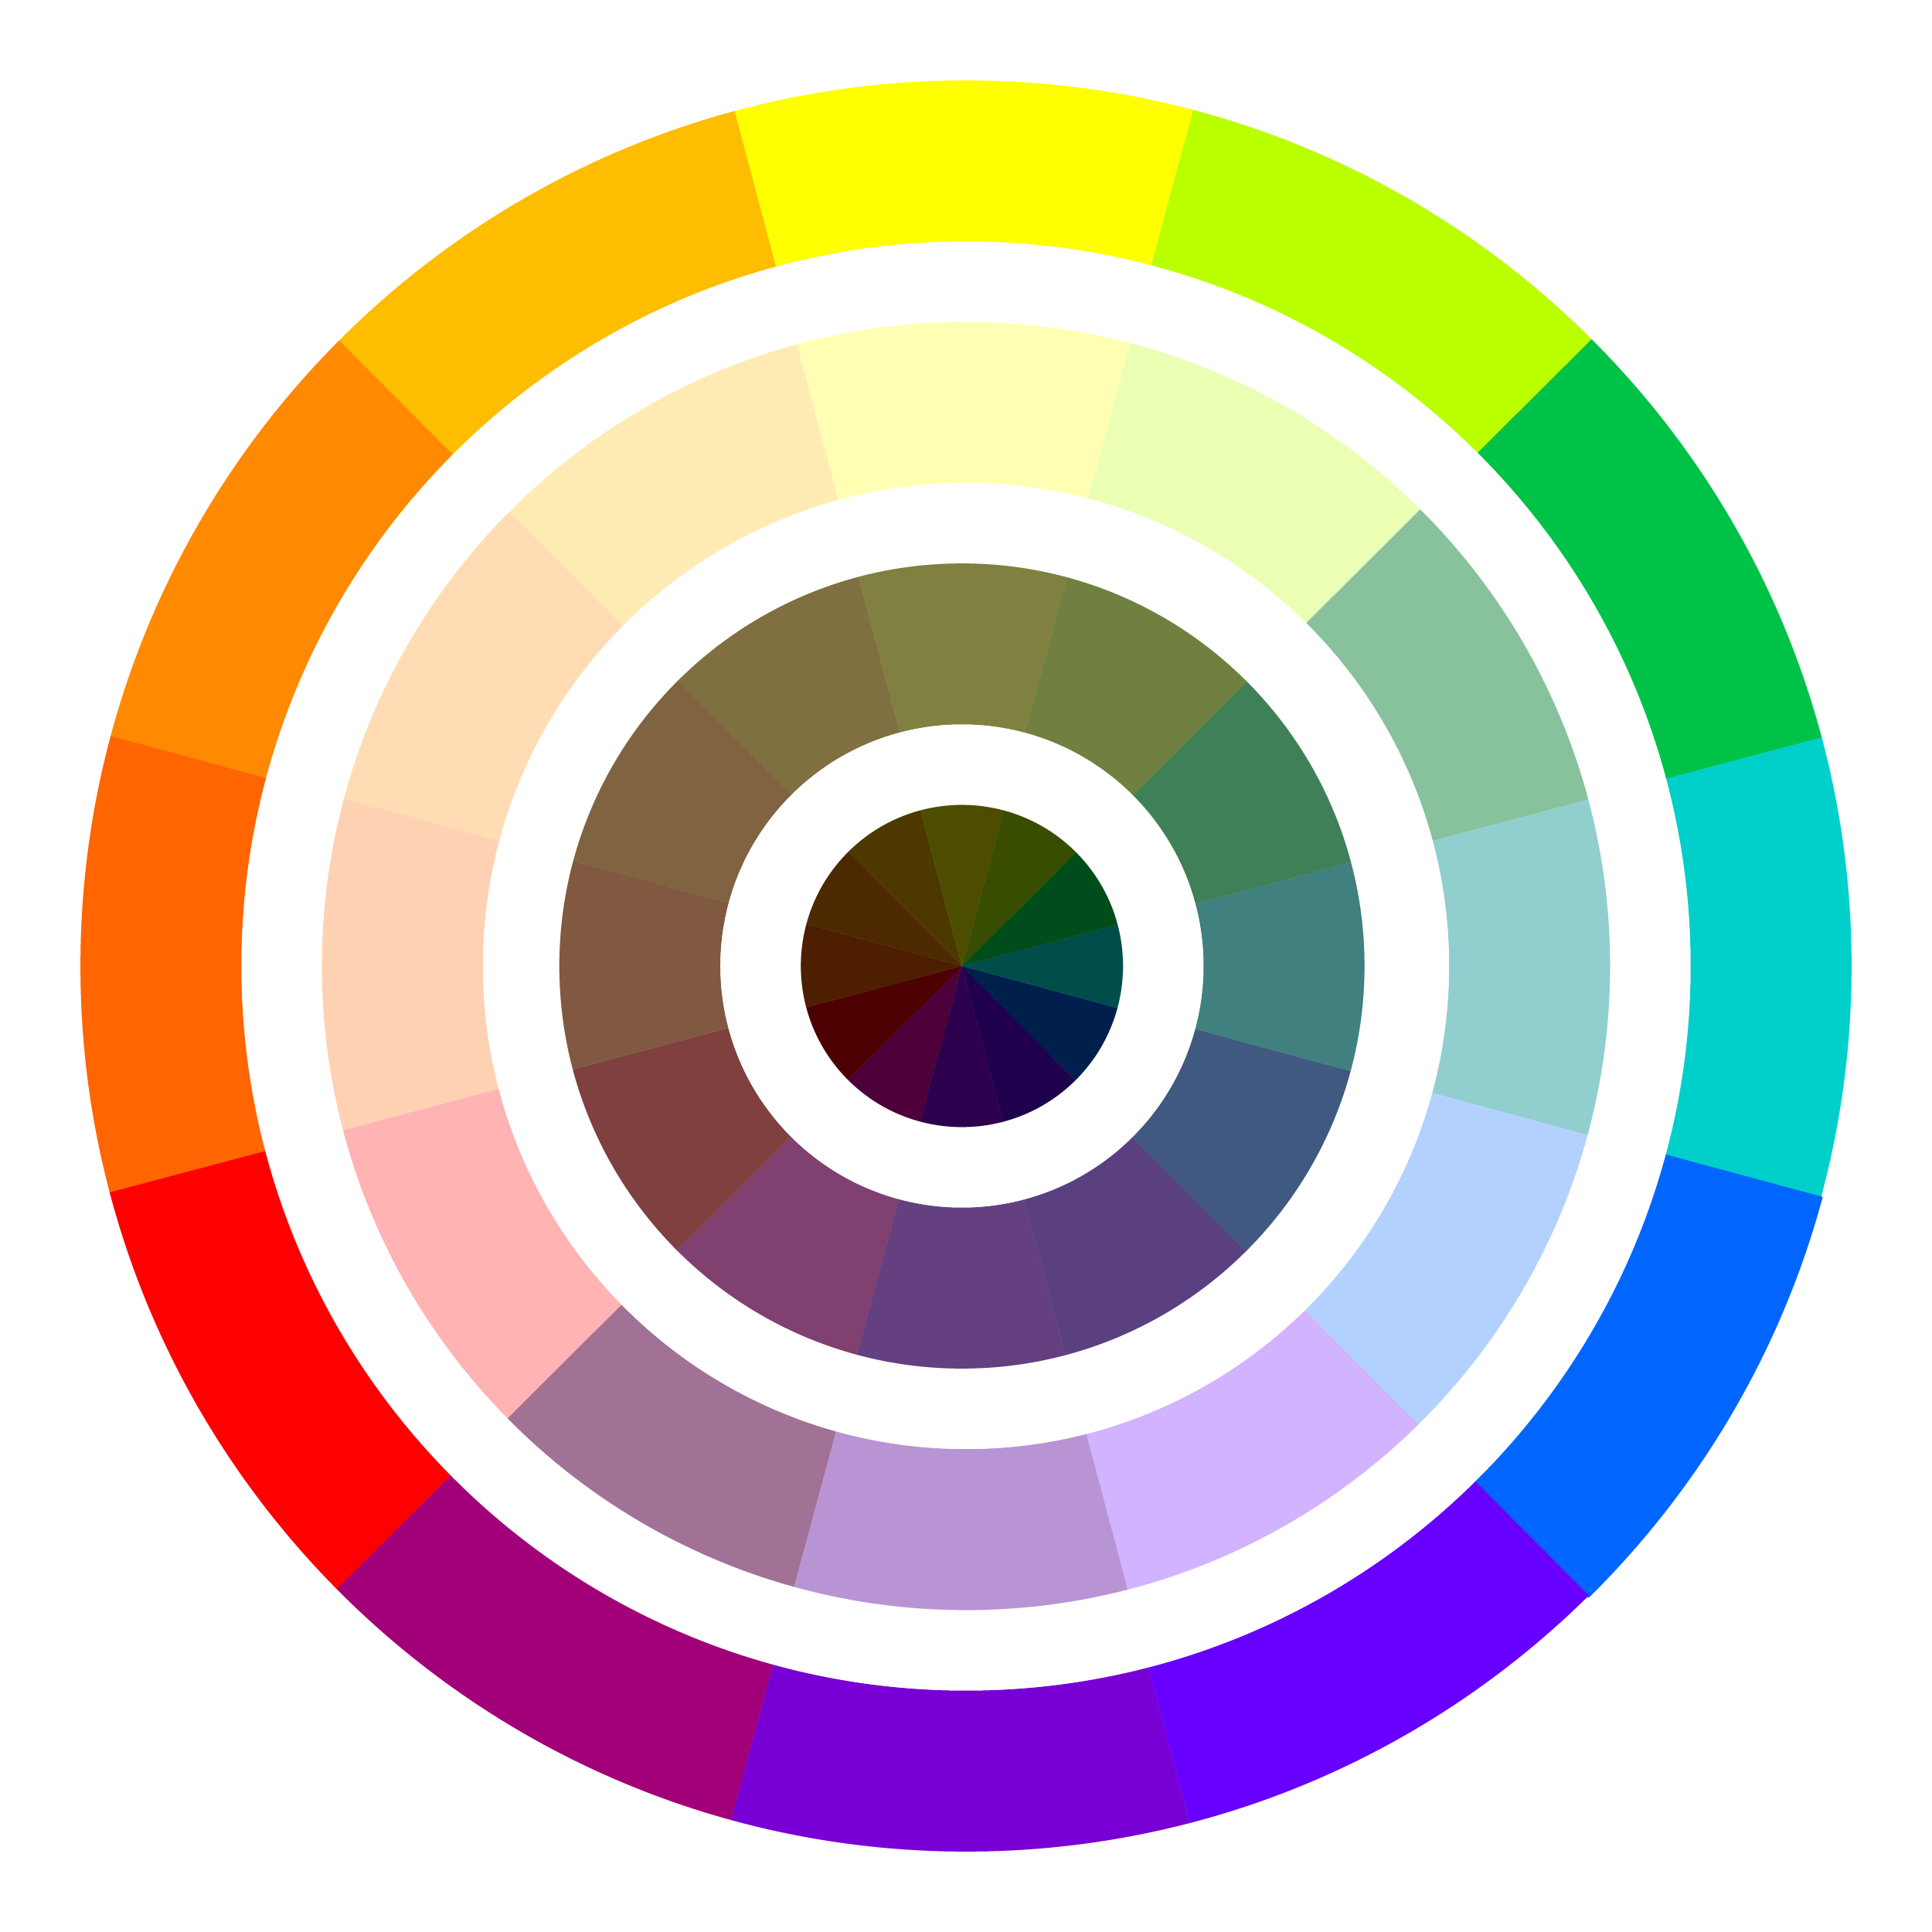 Image 1 Achromatic 2 Analogous Cool 3 Complementary 4 Basic Primary 5 Warm 6 Color Wheel